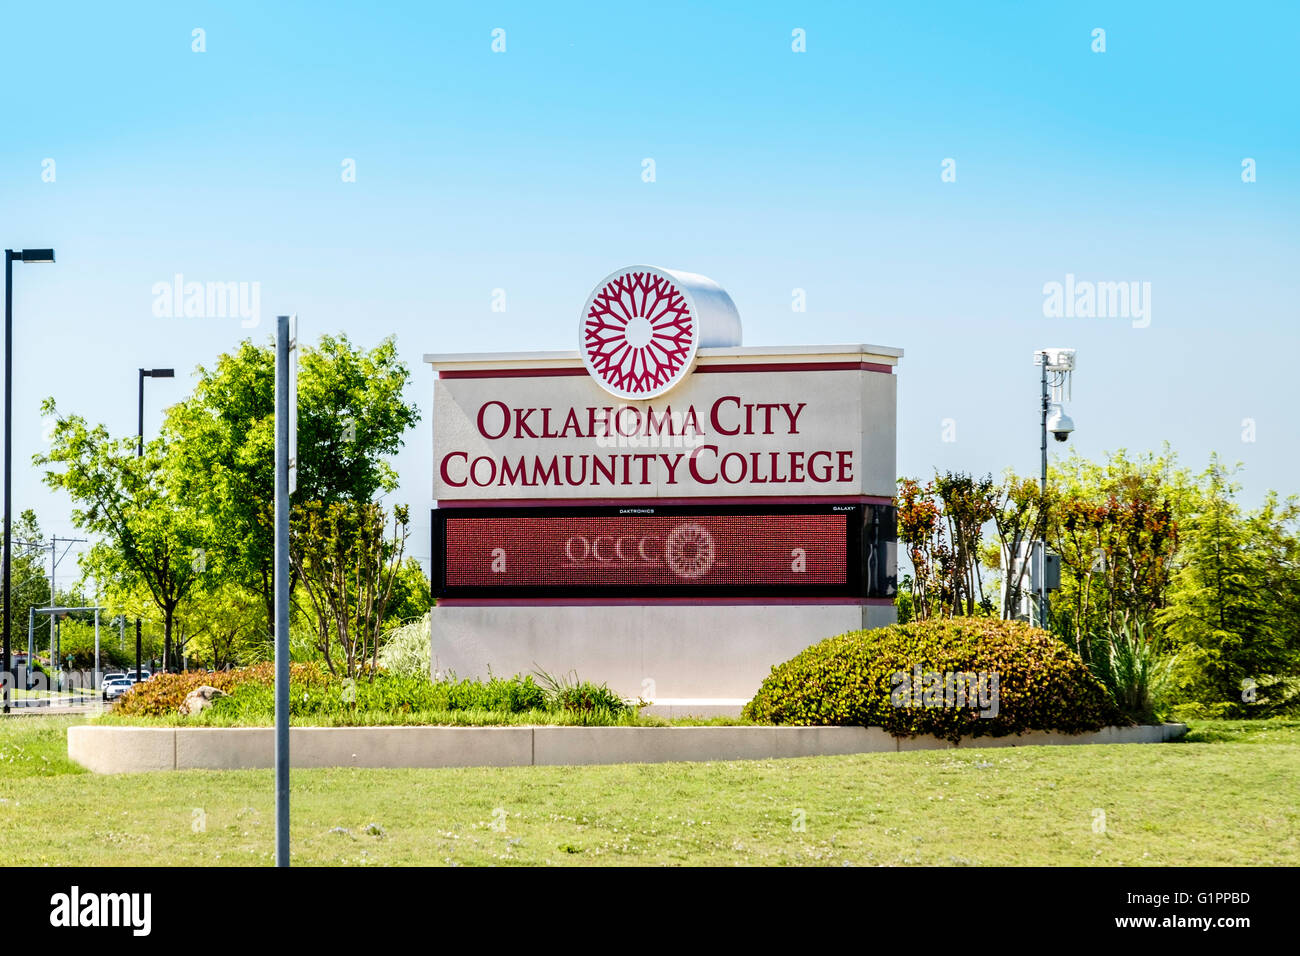 An entrance sign to Oklahoma City Community College in Oklahoma City Stock  Photo - Alamy